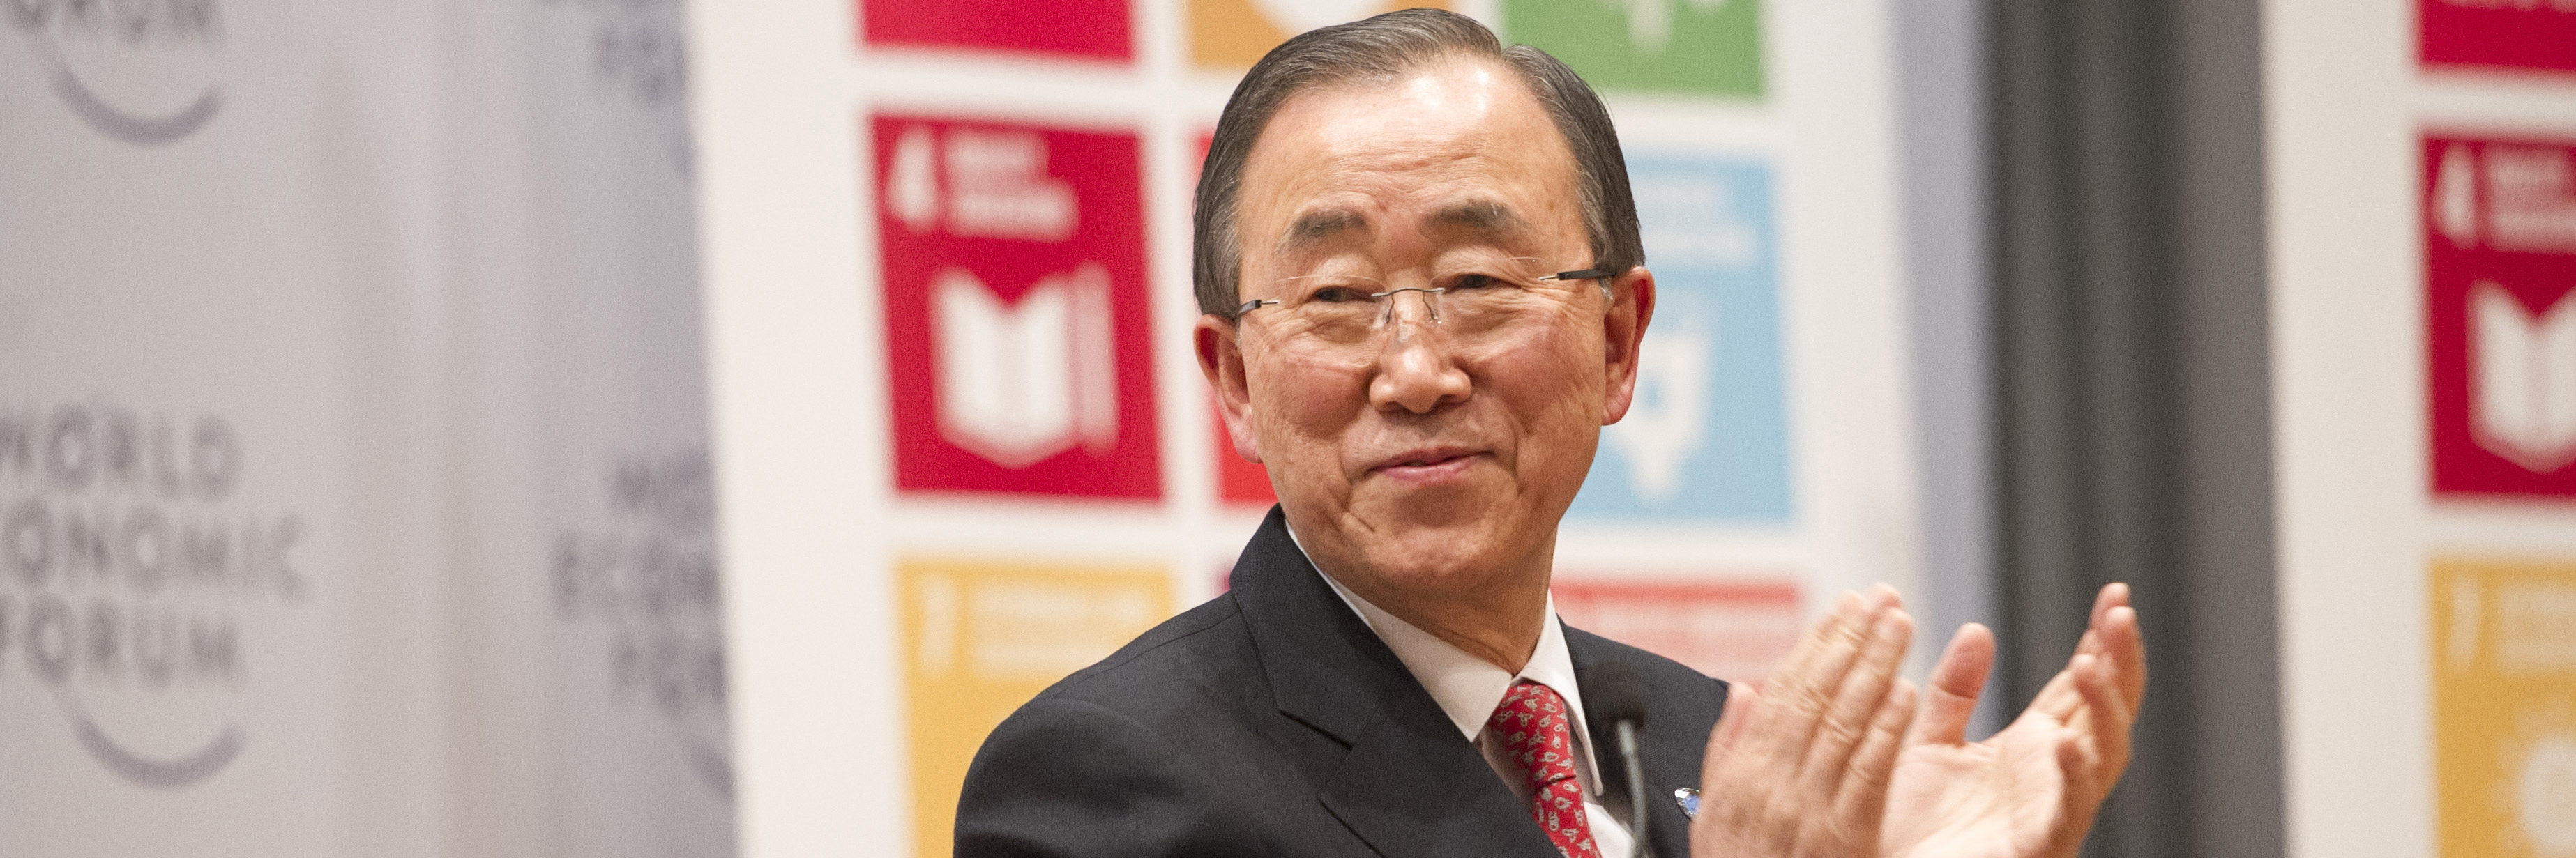 Secretary-General Ban Ki-moon attends launch of SDG Advocates at the WEF Open Forum